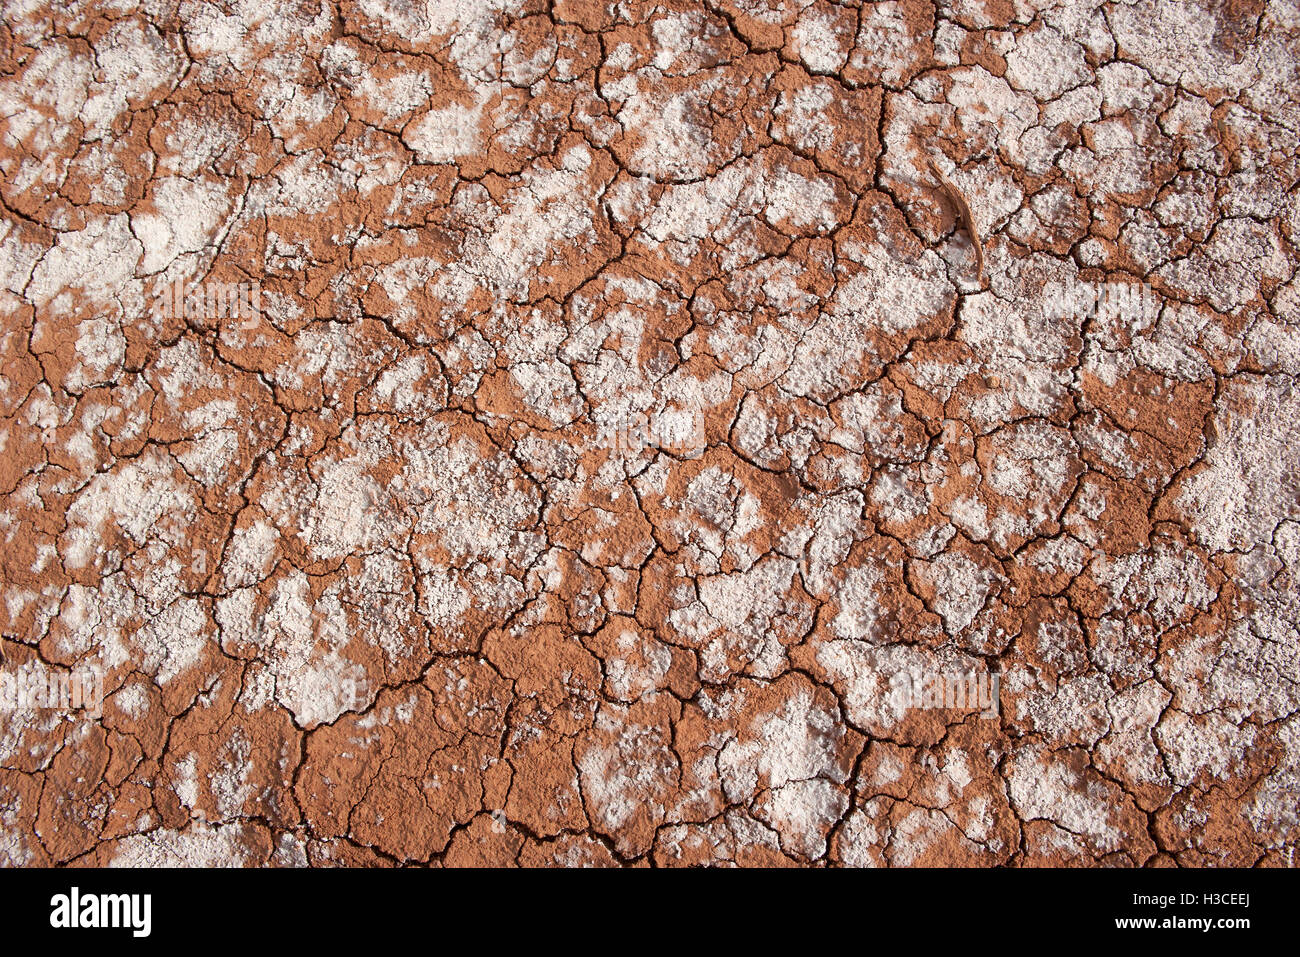 Close-up of dry, cracked soil - Stock Image